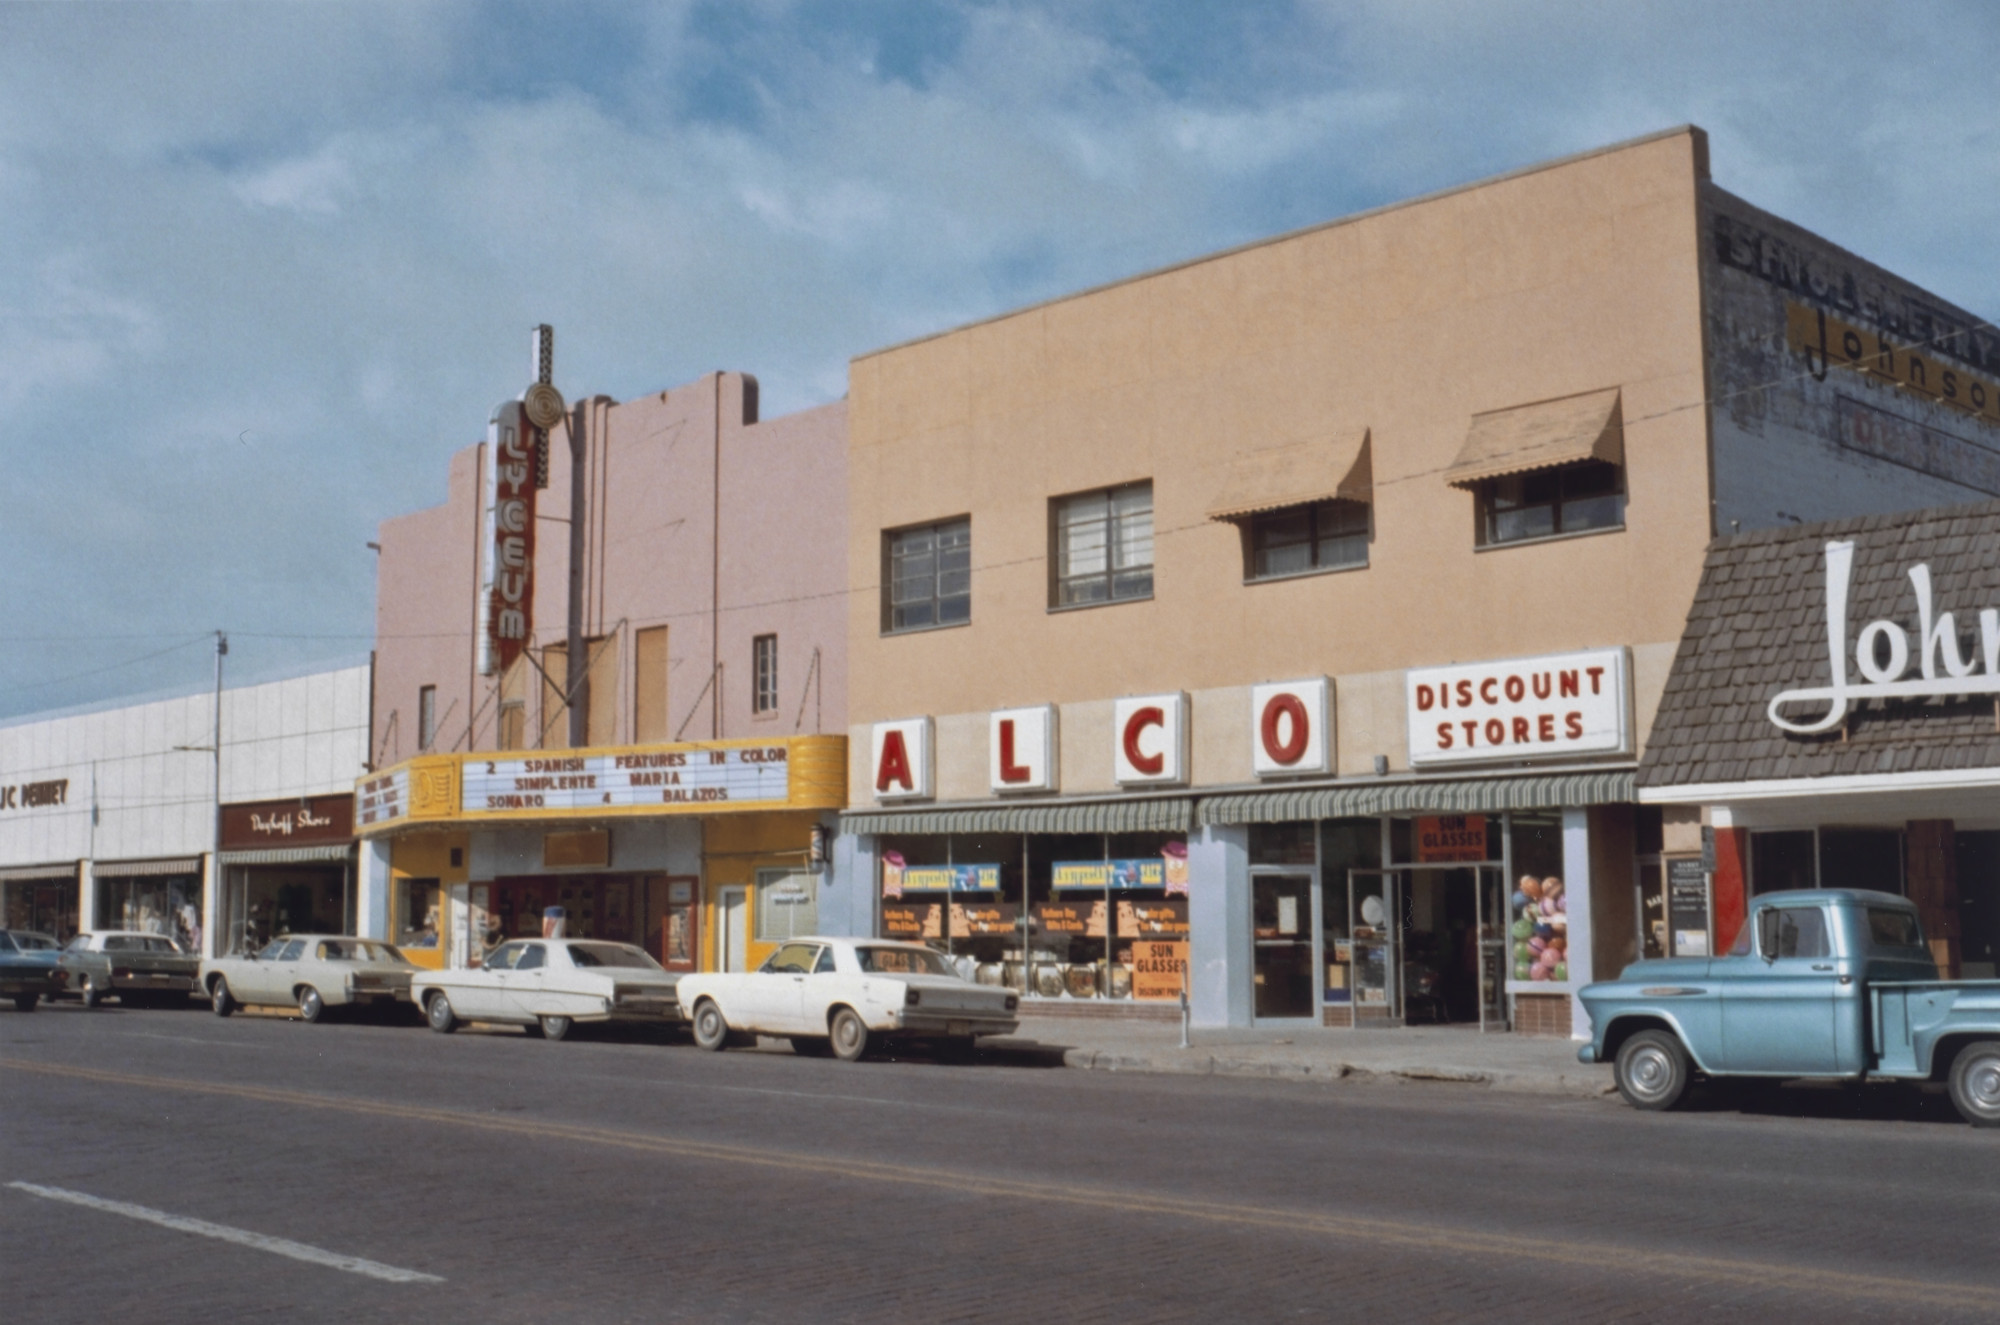 Stephen Shore. Clovis, New Mexico, June 1972. 1972